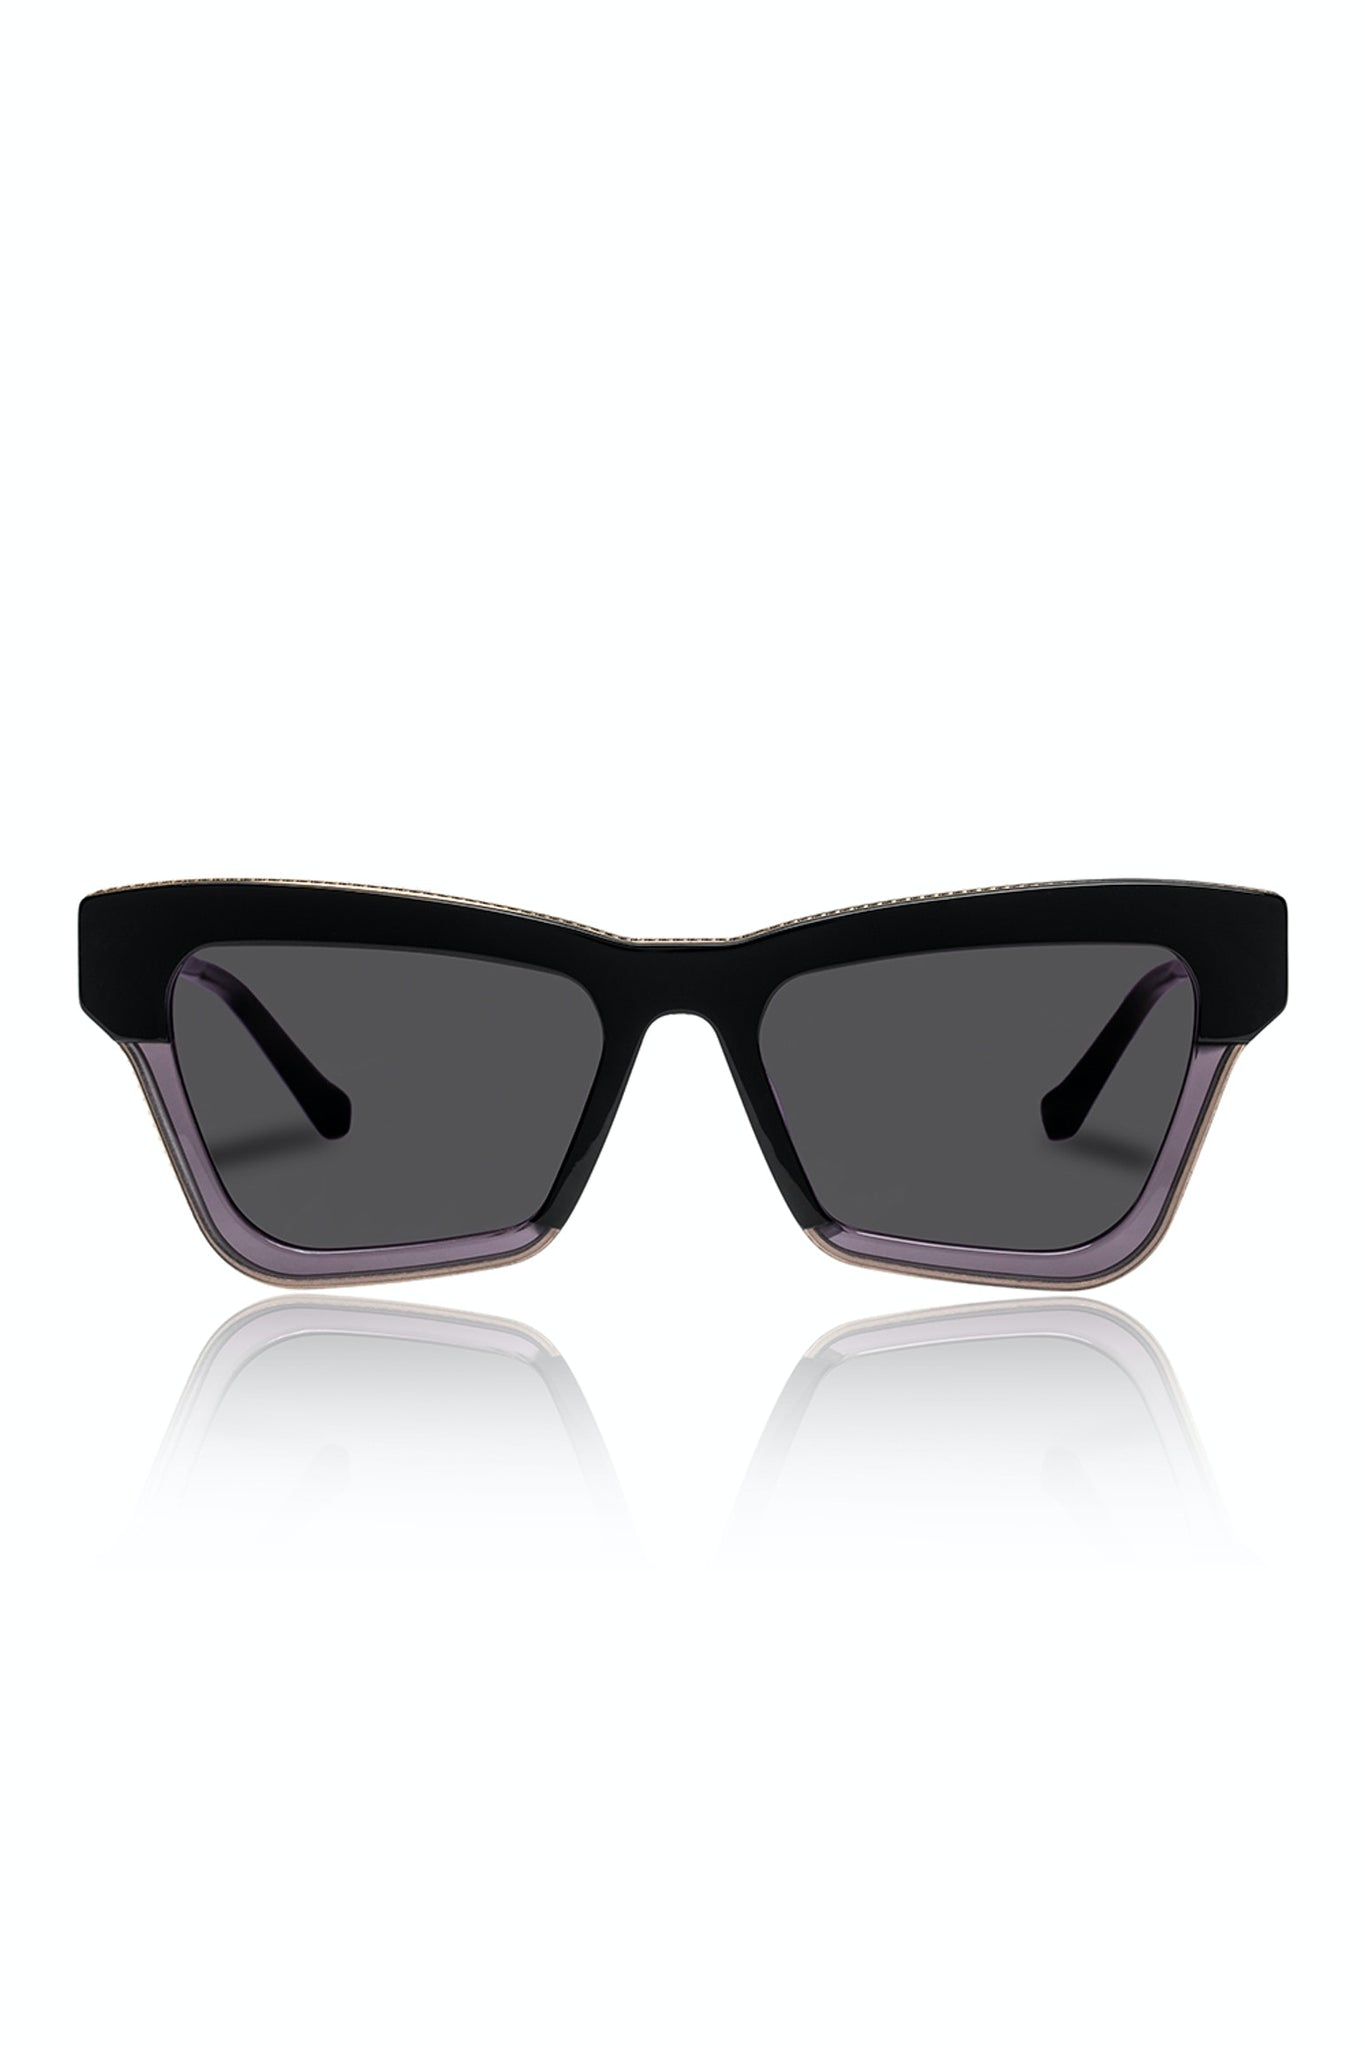 Karen Walker Dark Matter Black/Smoke Mono